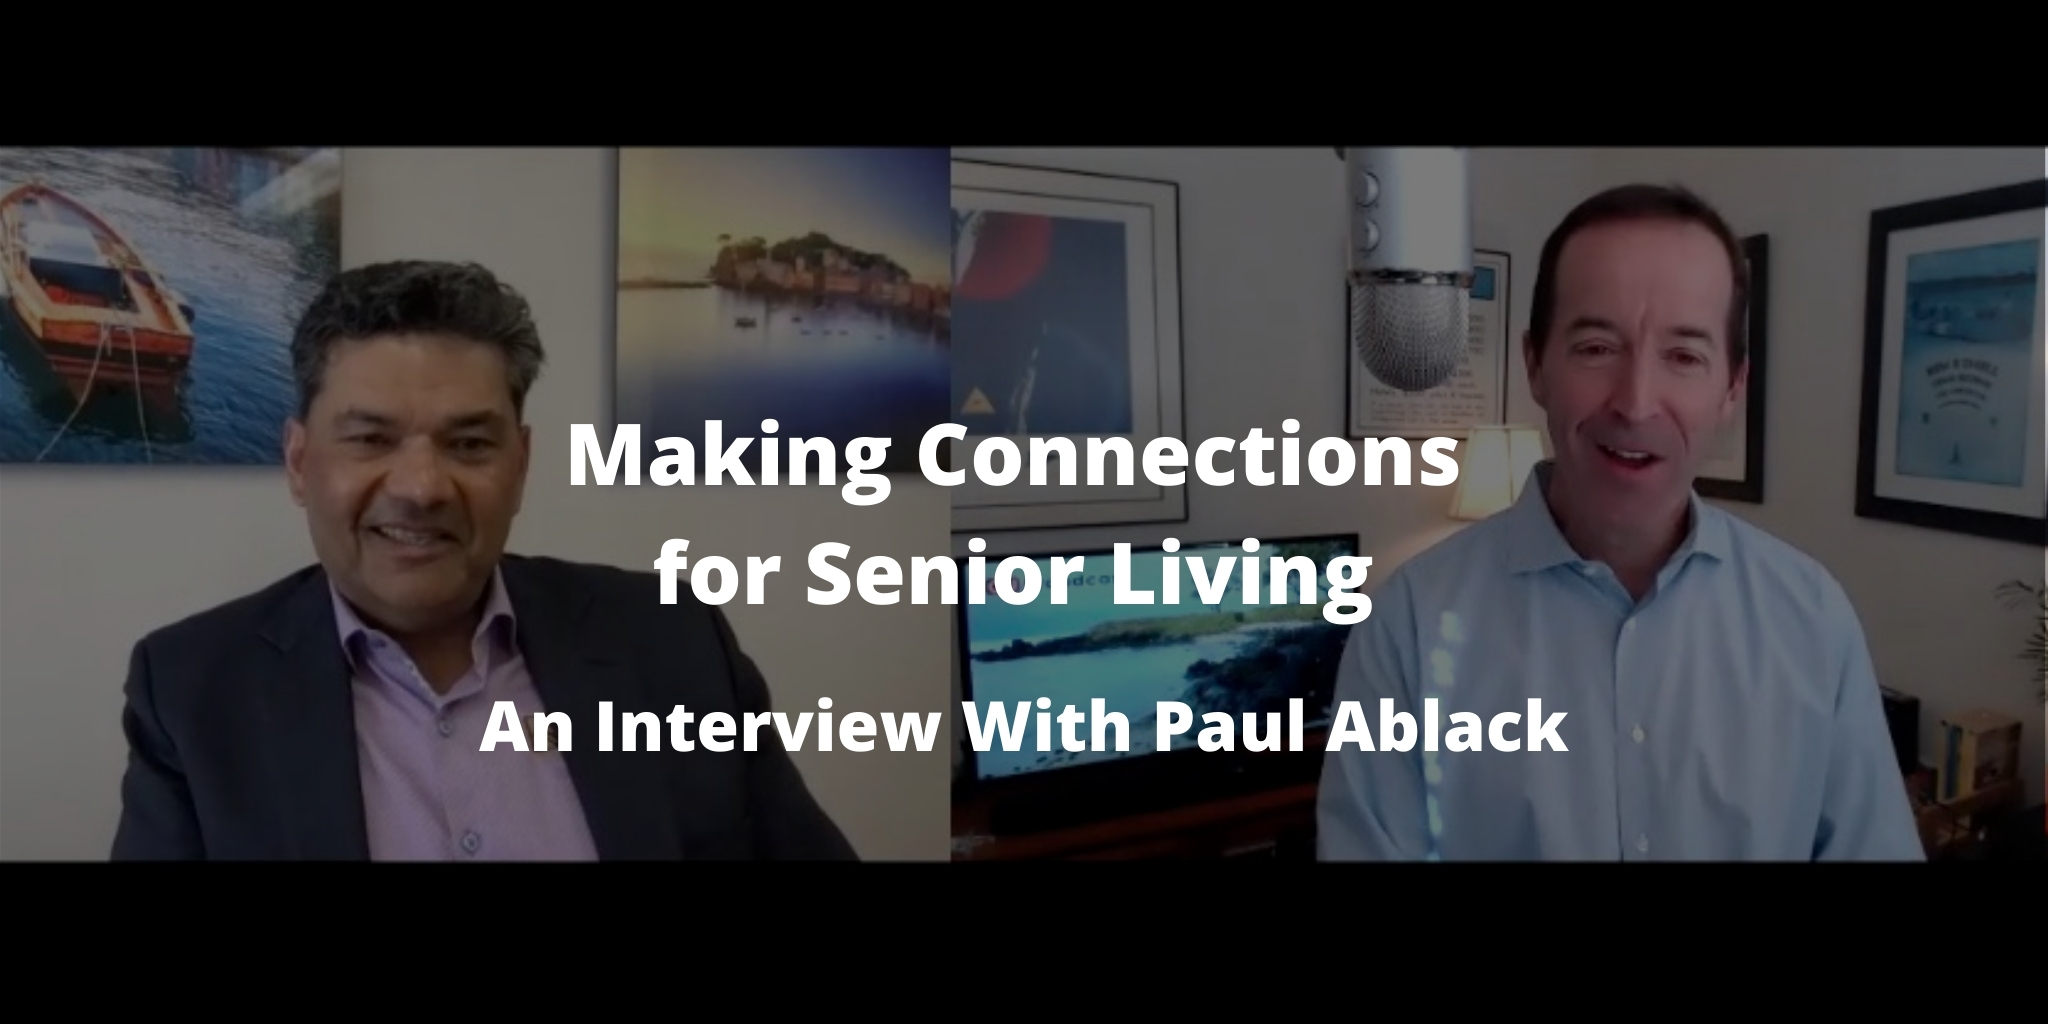 Making Connections for Senior Living: An Interview With Paul Ablack